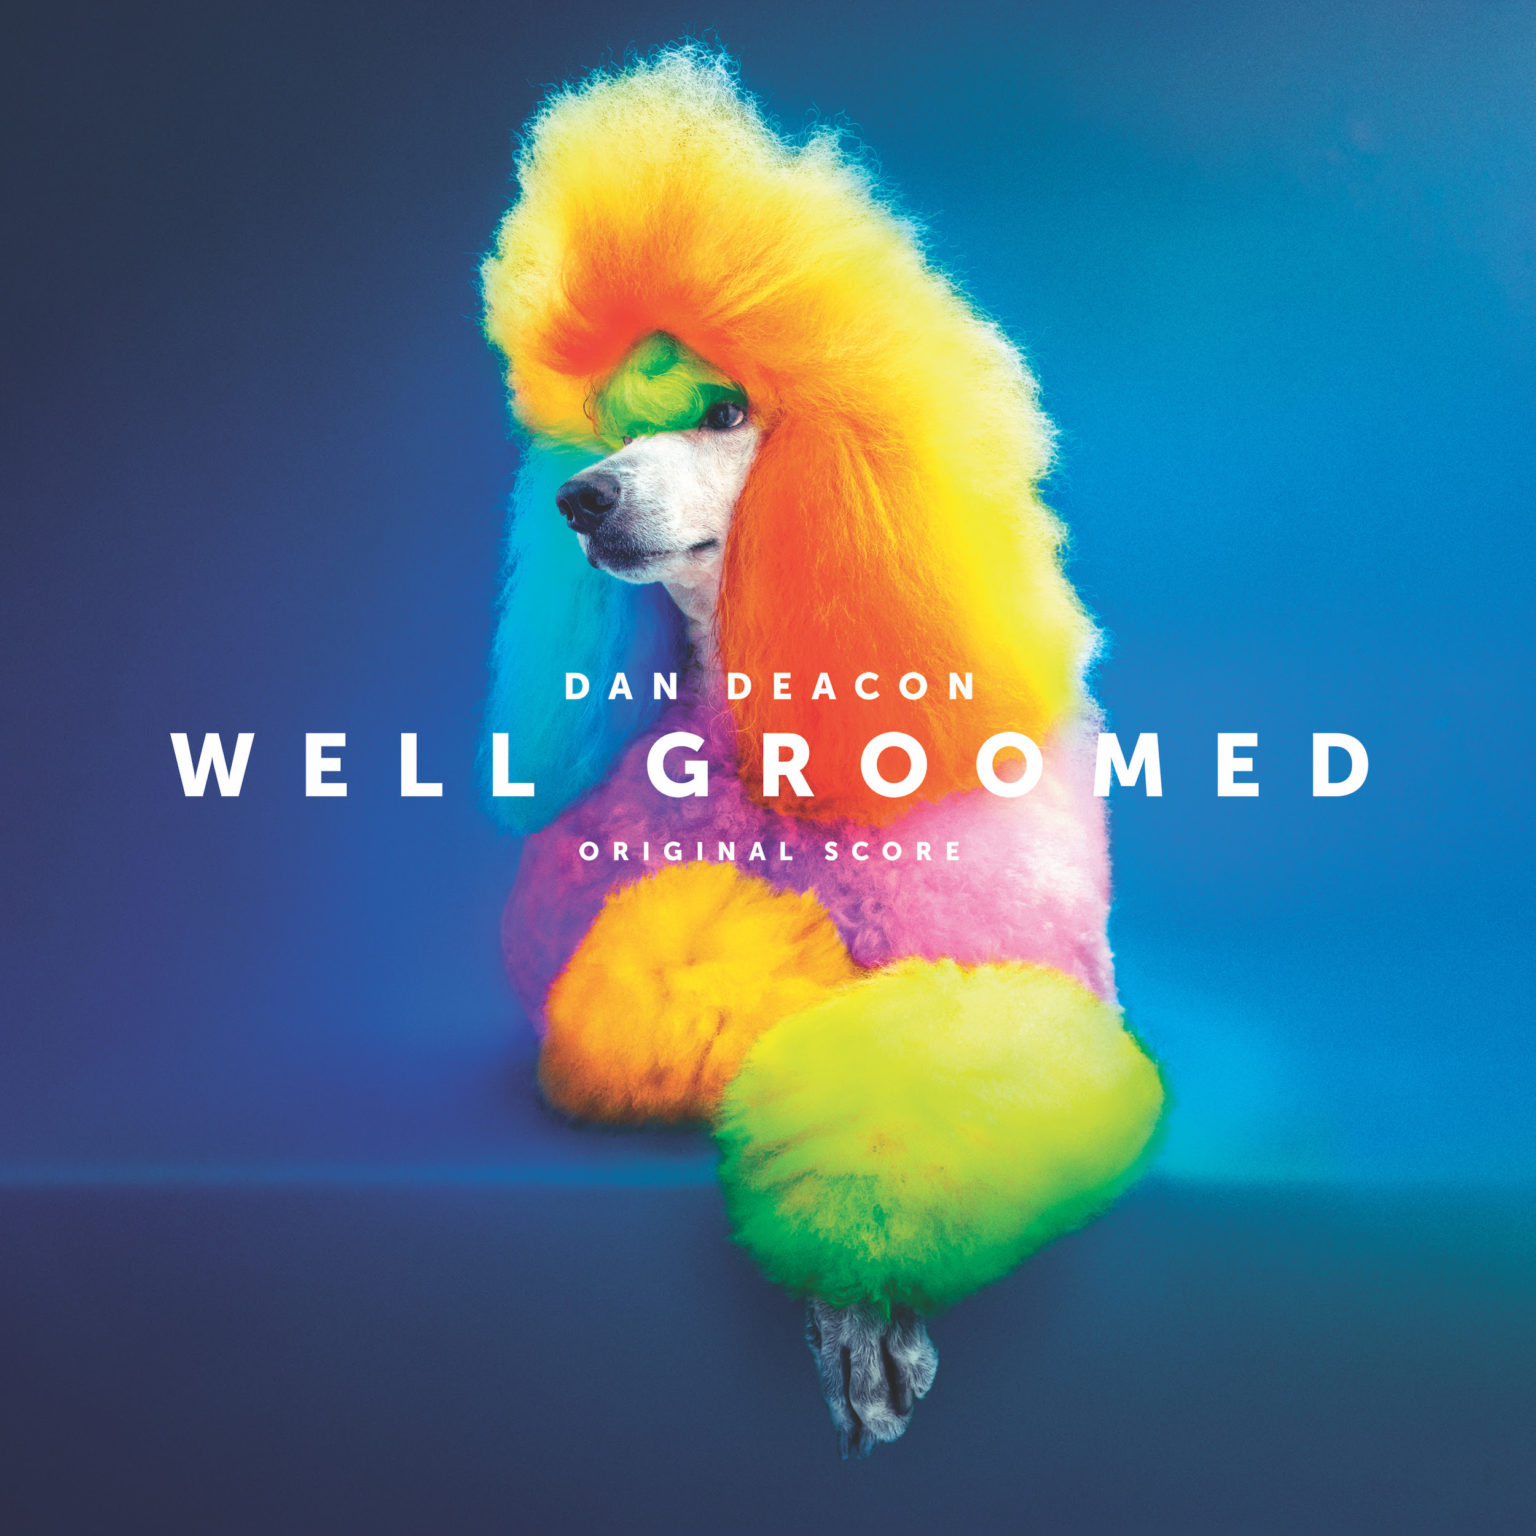 Prior to the release of his LP Mystic Familiar, Dan Deacon returns with an original score to HBO documentary Well Groomed, out today on Domino Soundtracks.